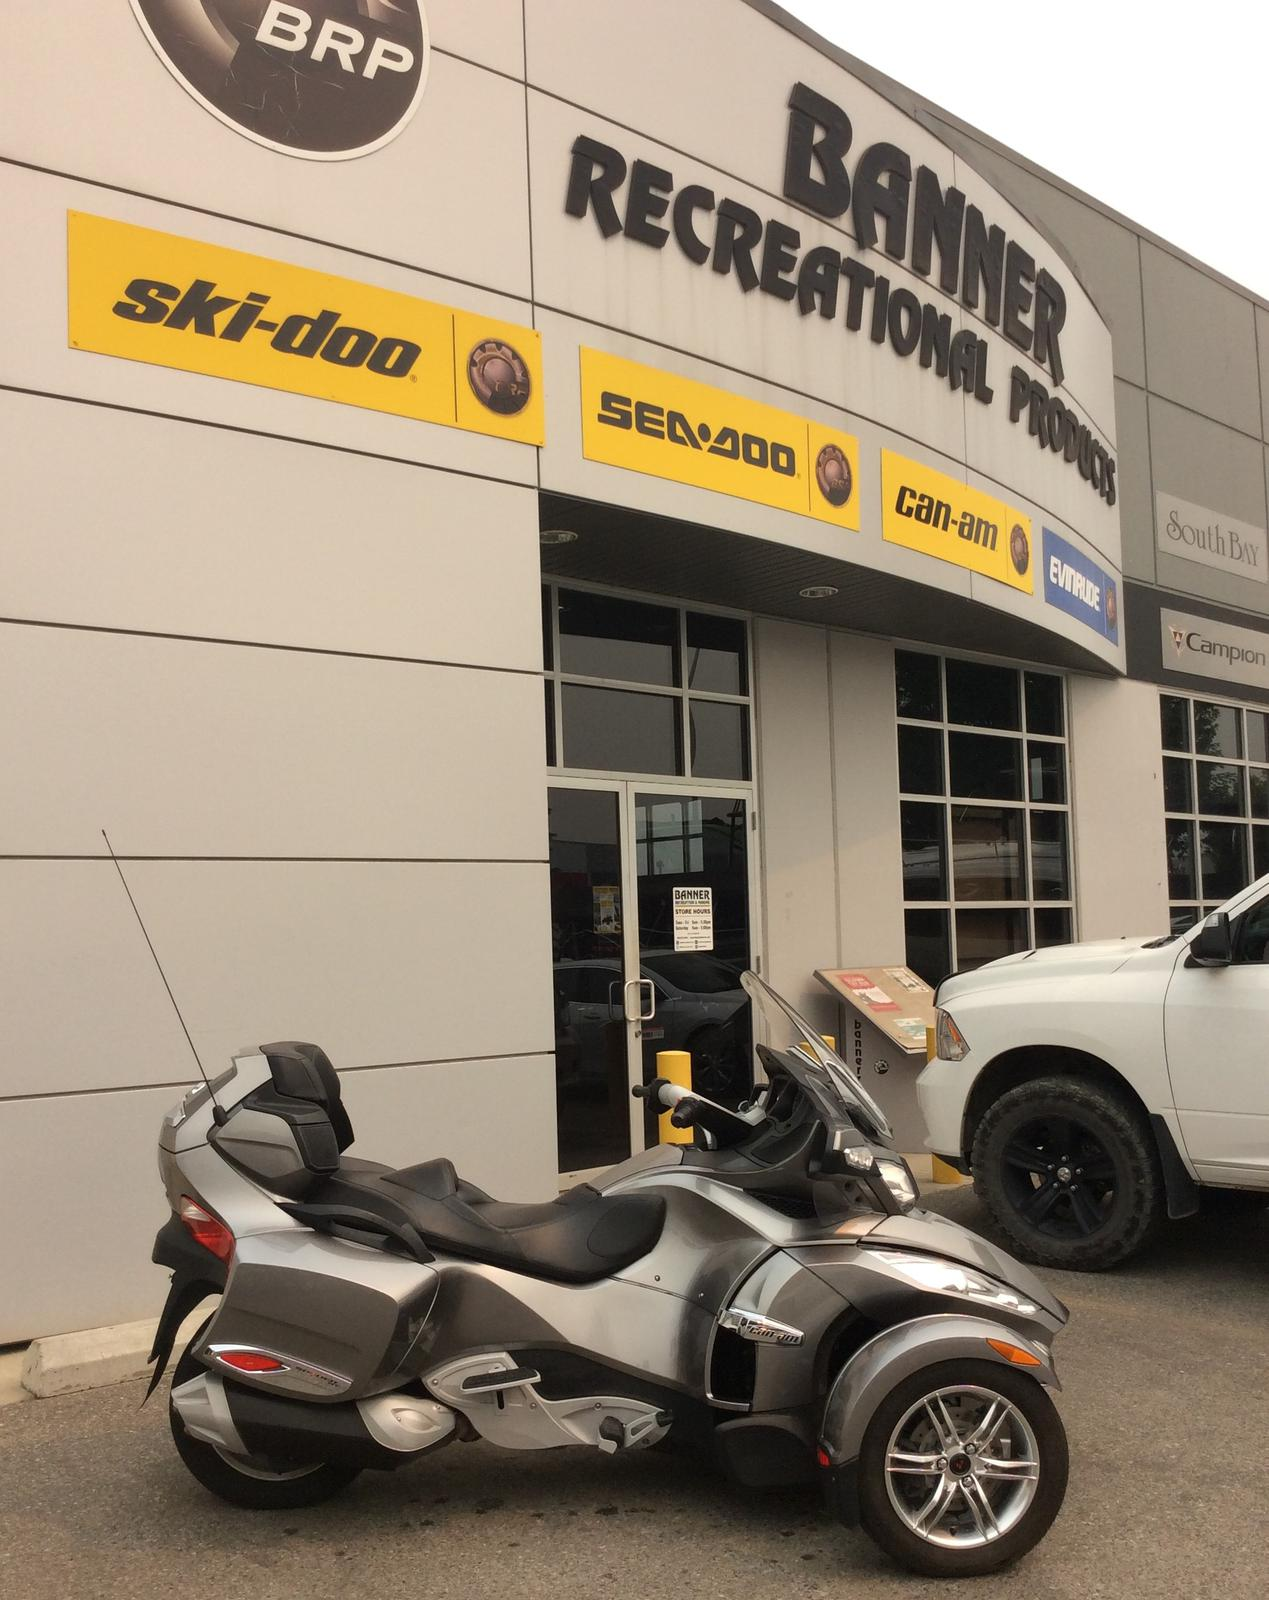 2011 Can-Am ATV Rt-s Roadster - Se5